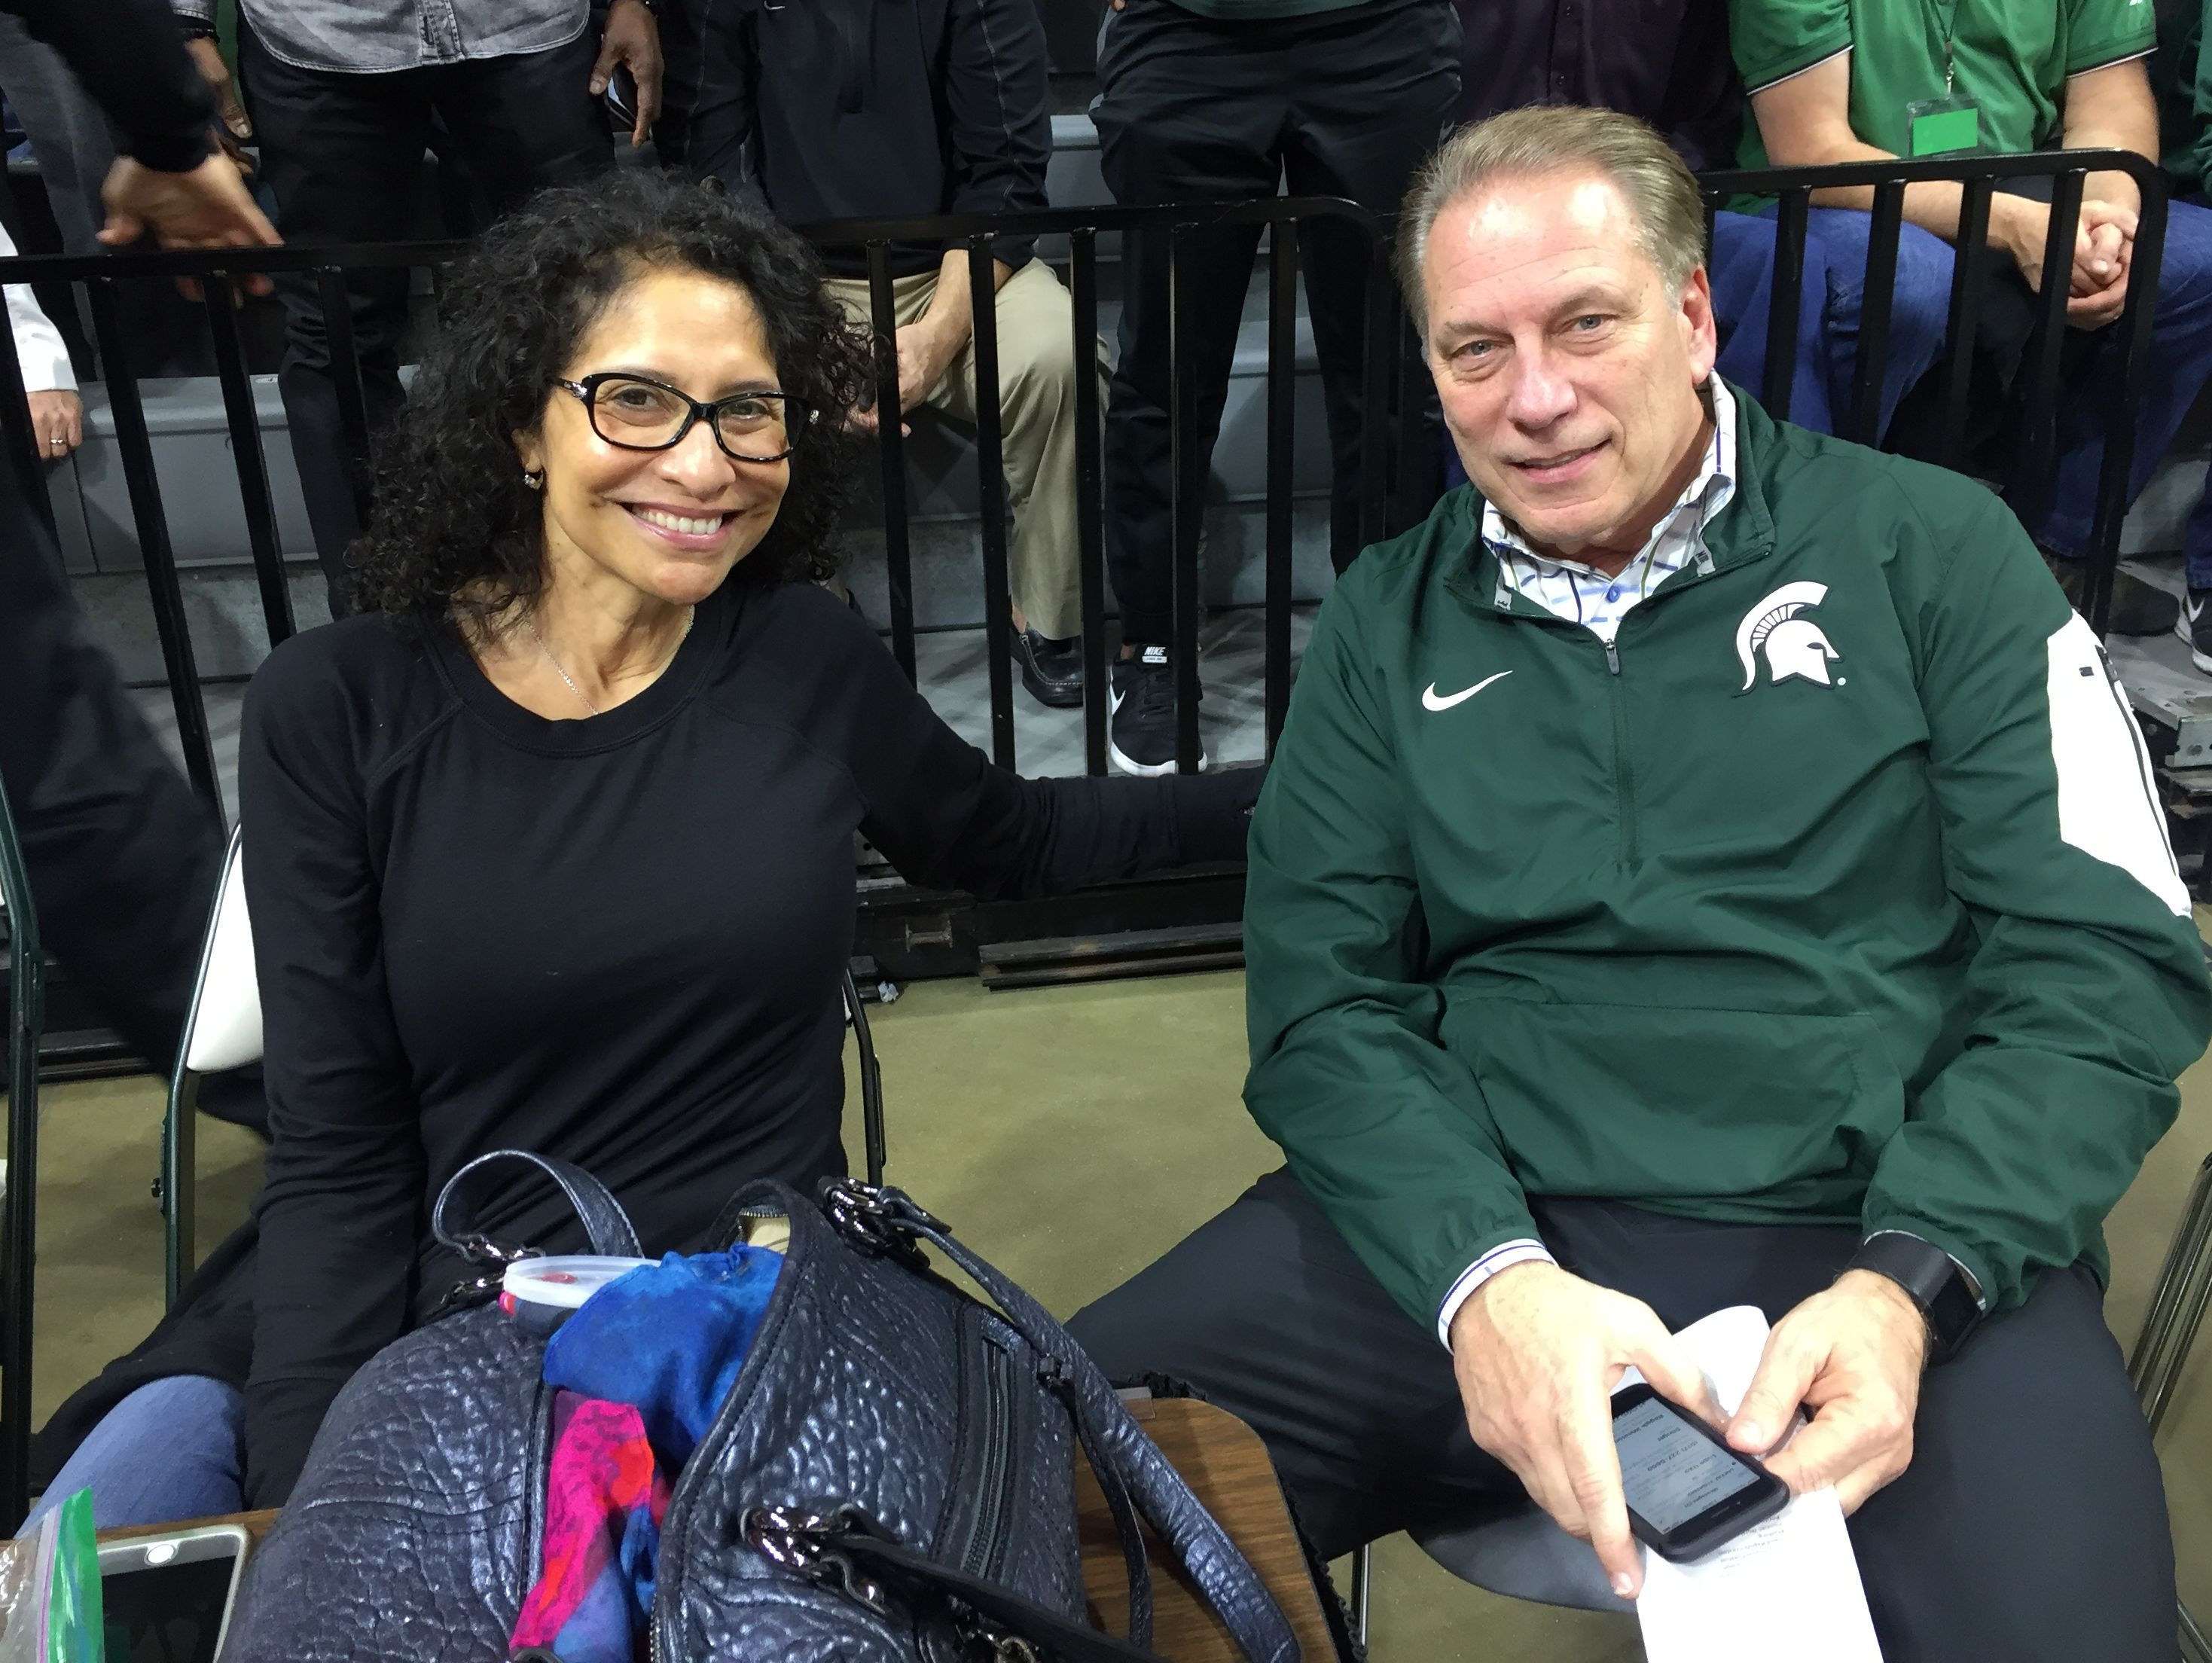 Michigan State basketball coach Tom Izzo and his wife, Lupe, sit courtside during the Class A boys basketball state semifinal win for Clarkston, led by MSU commit Foster Loyer on March 24.